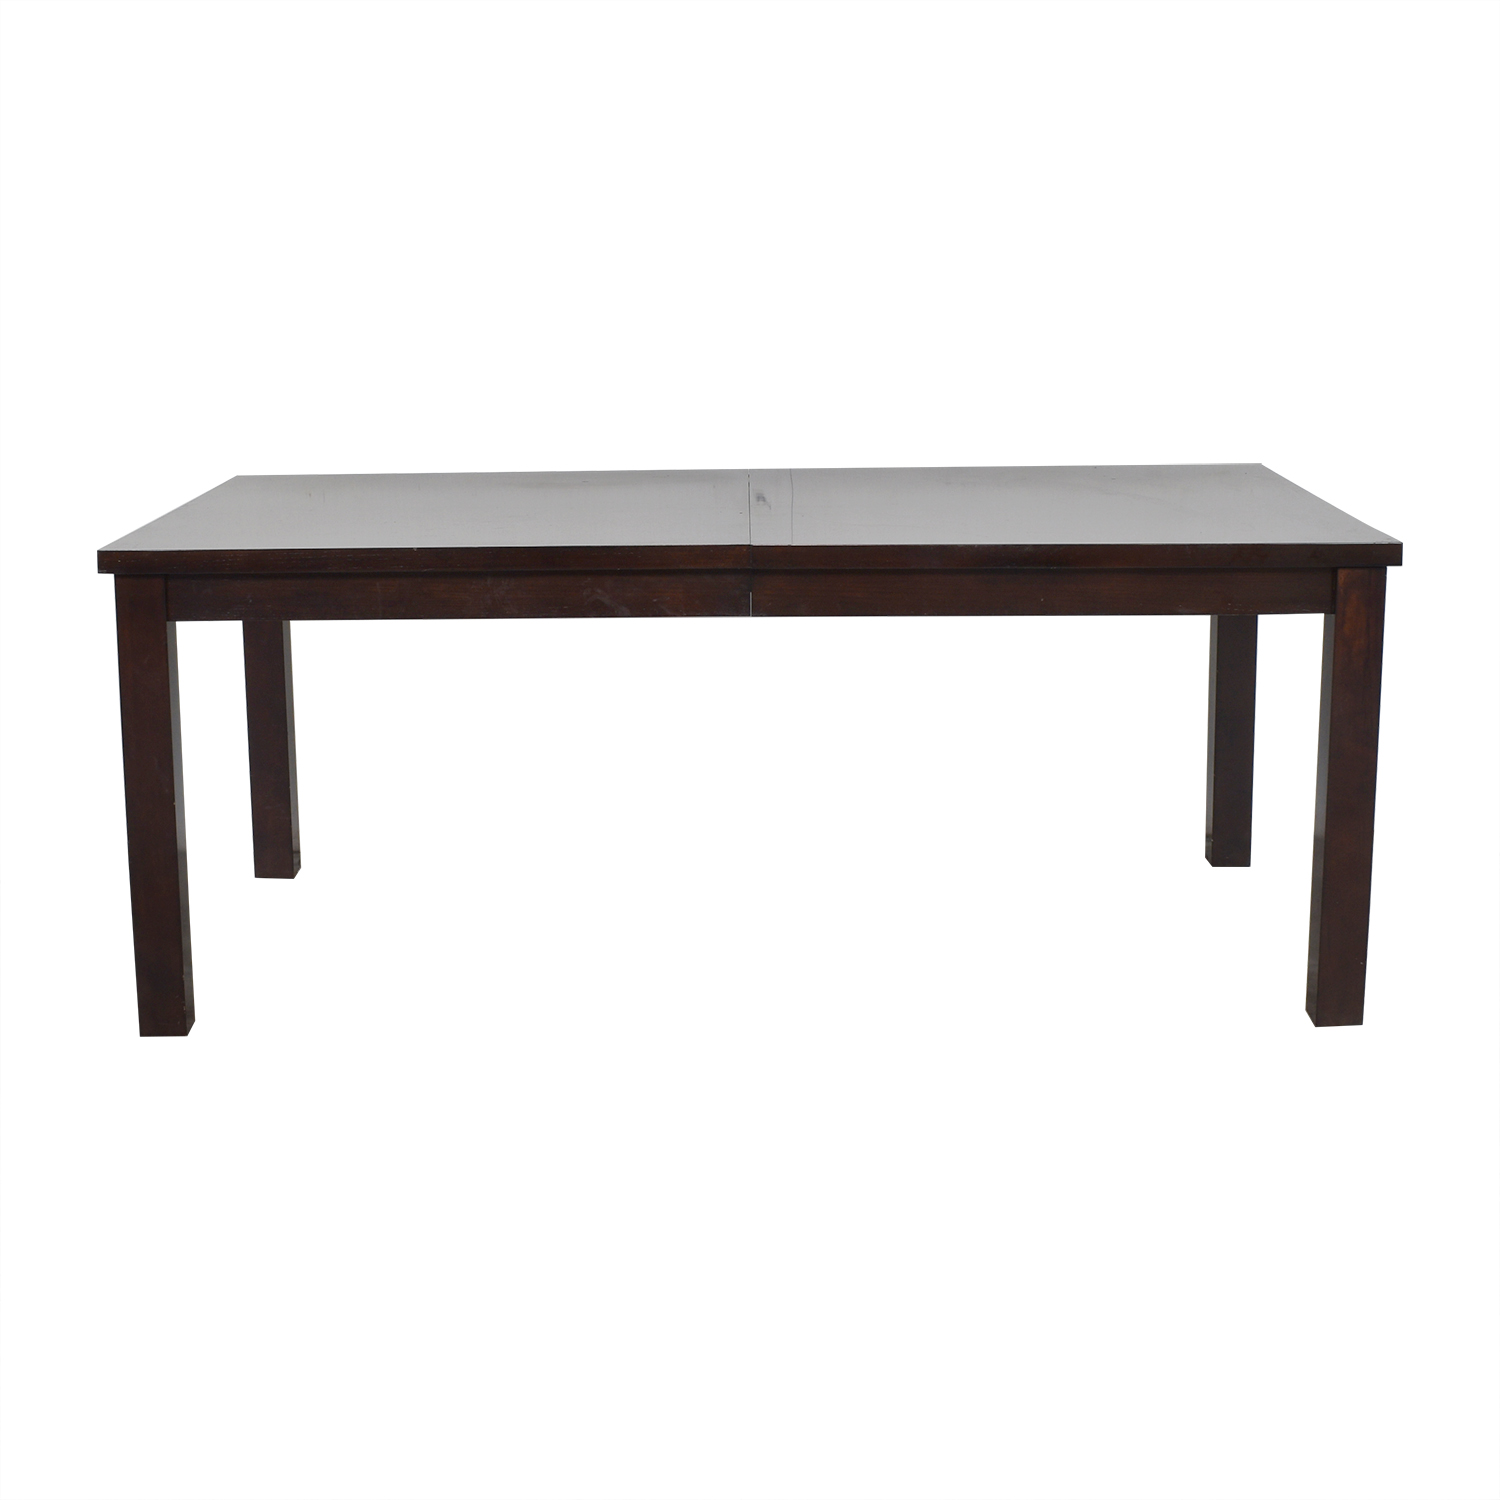 Mitchell Gold + Bob Williams Mitchell Gold + Bob Williams Dining Table ct